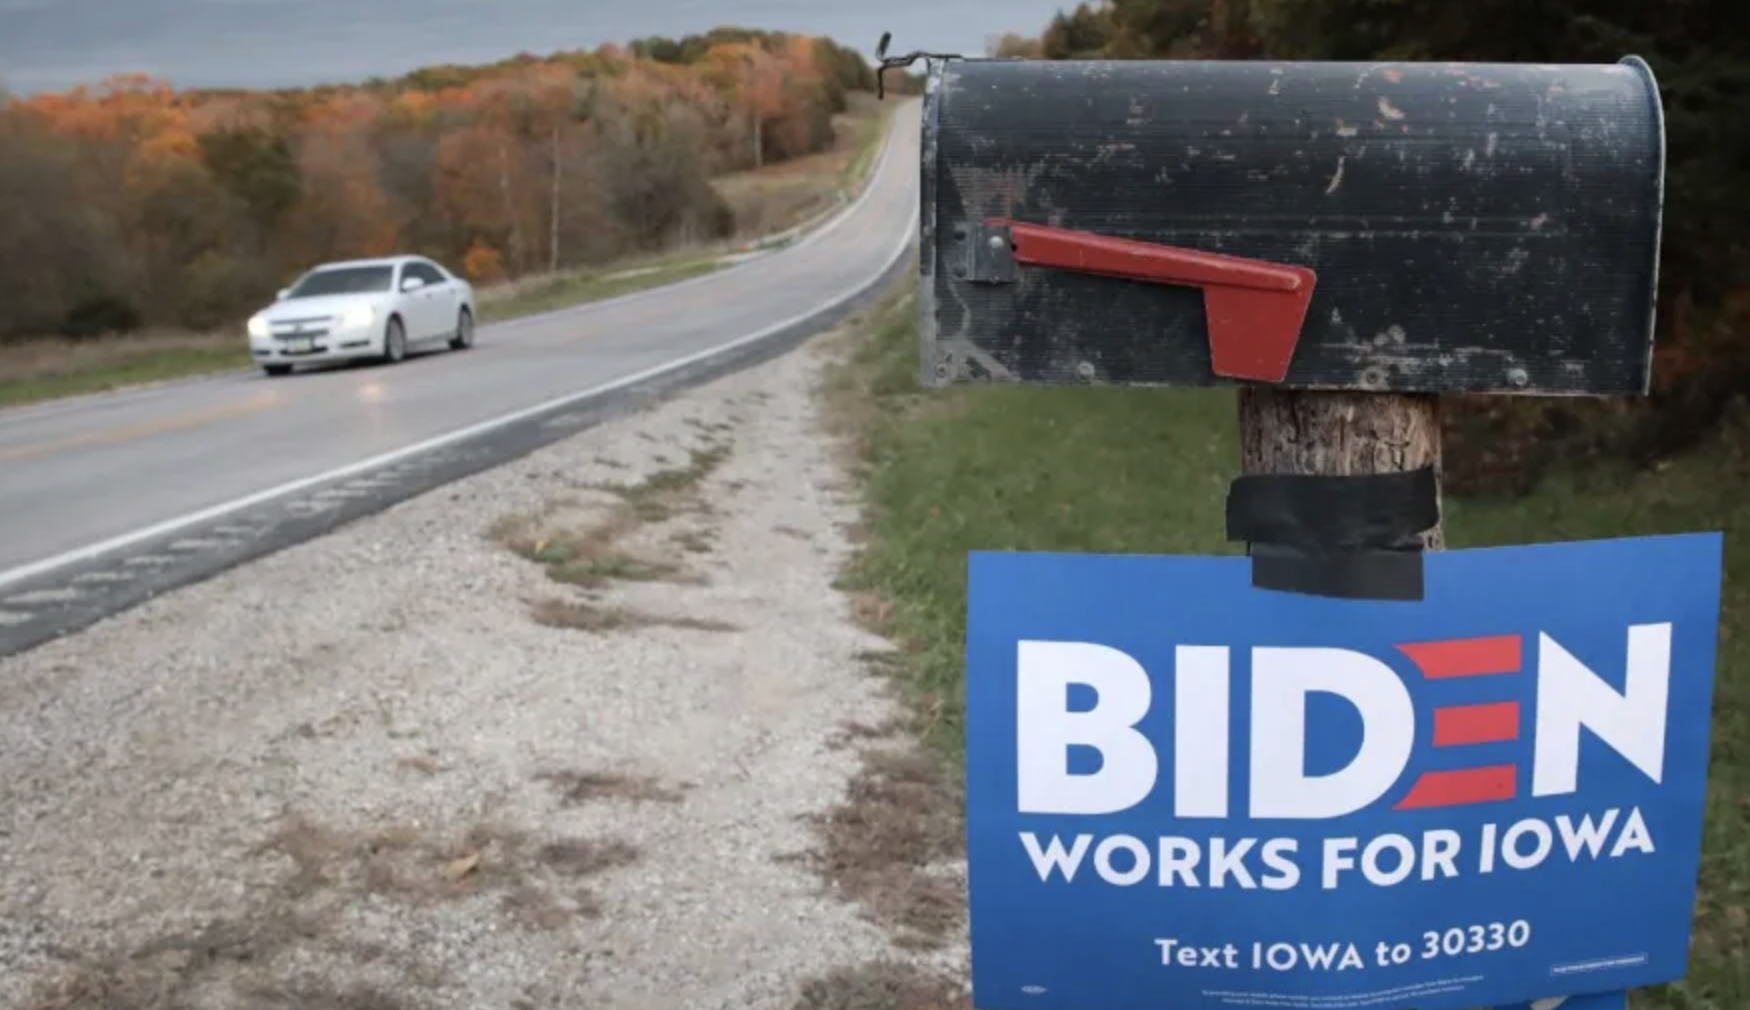 The Biden Campaign Pushed Iowa Staffers To Drive In Dangerous Weather